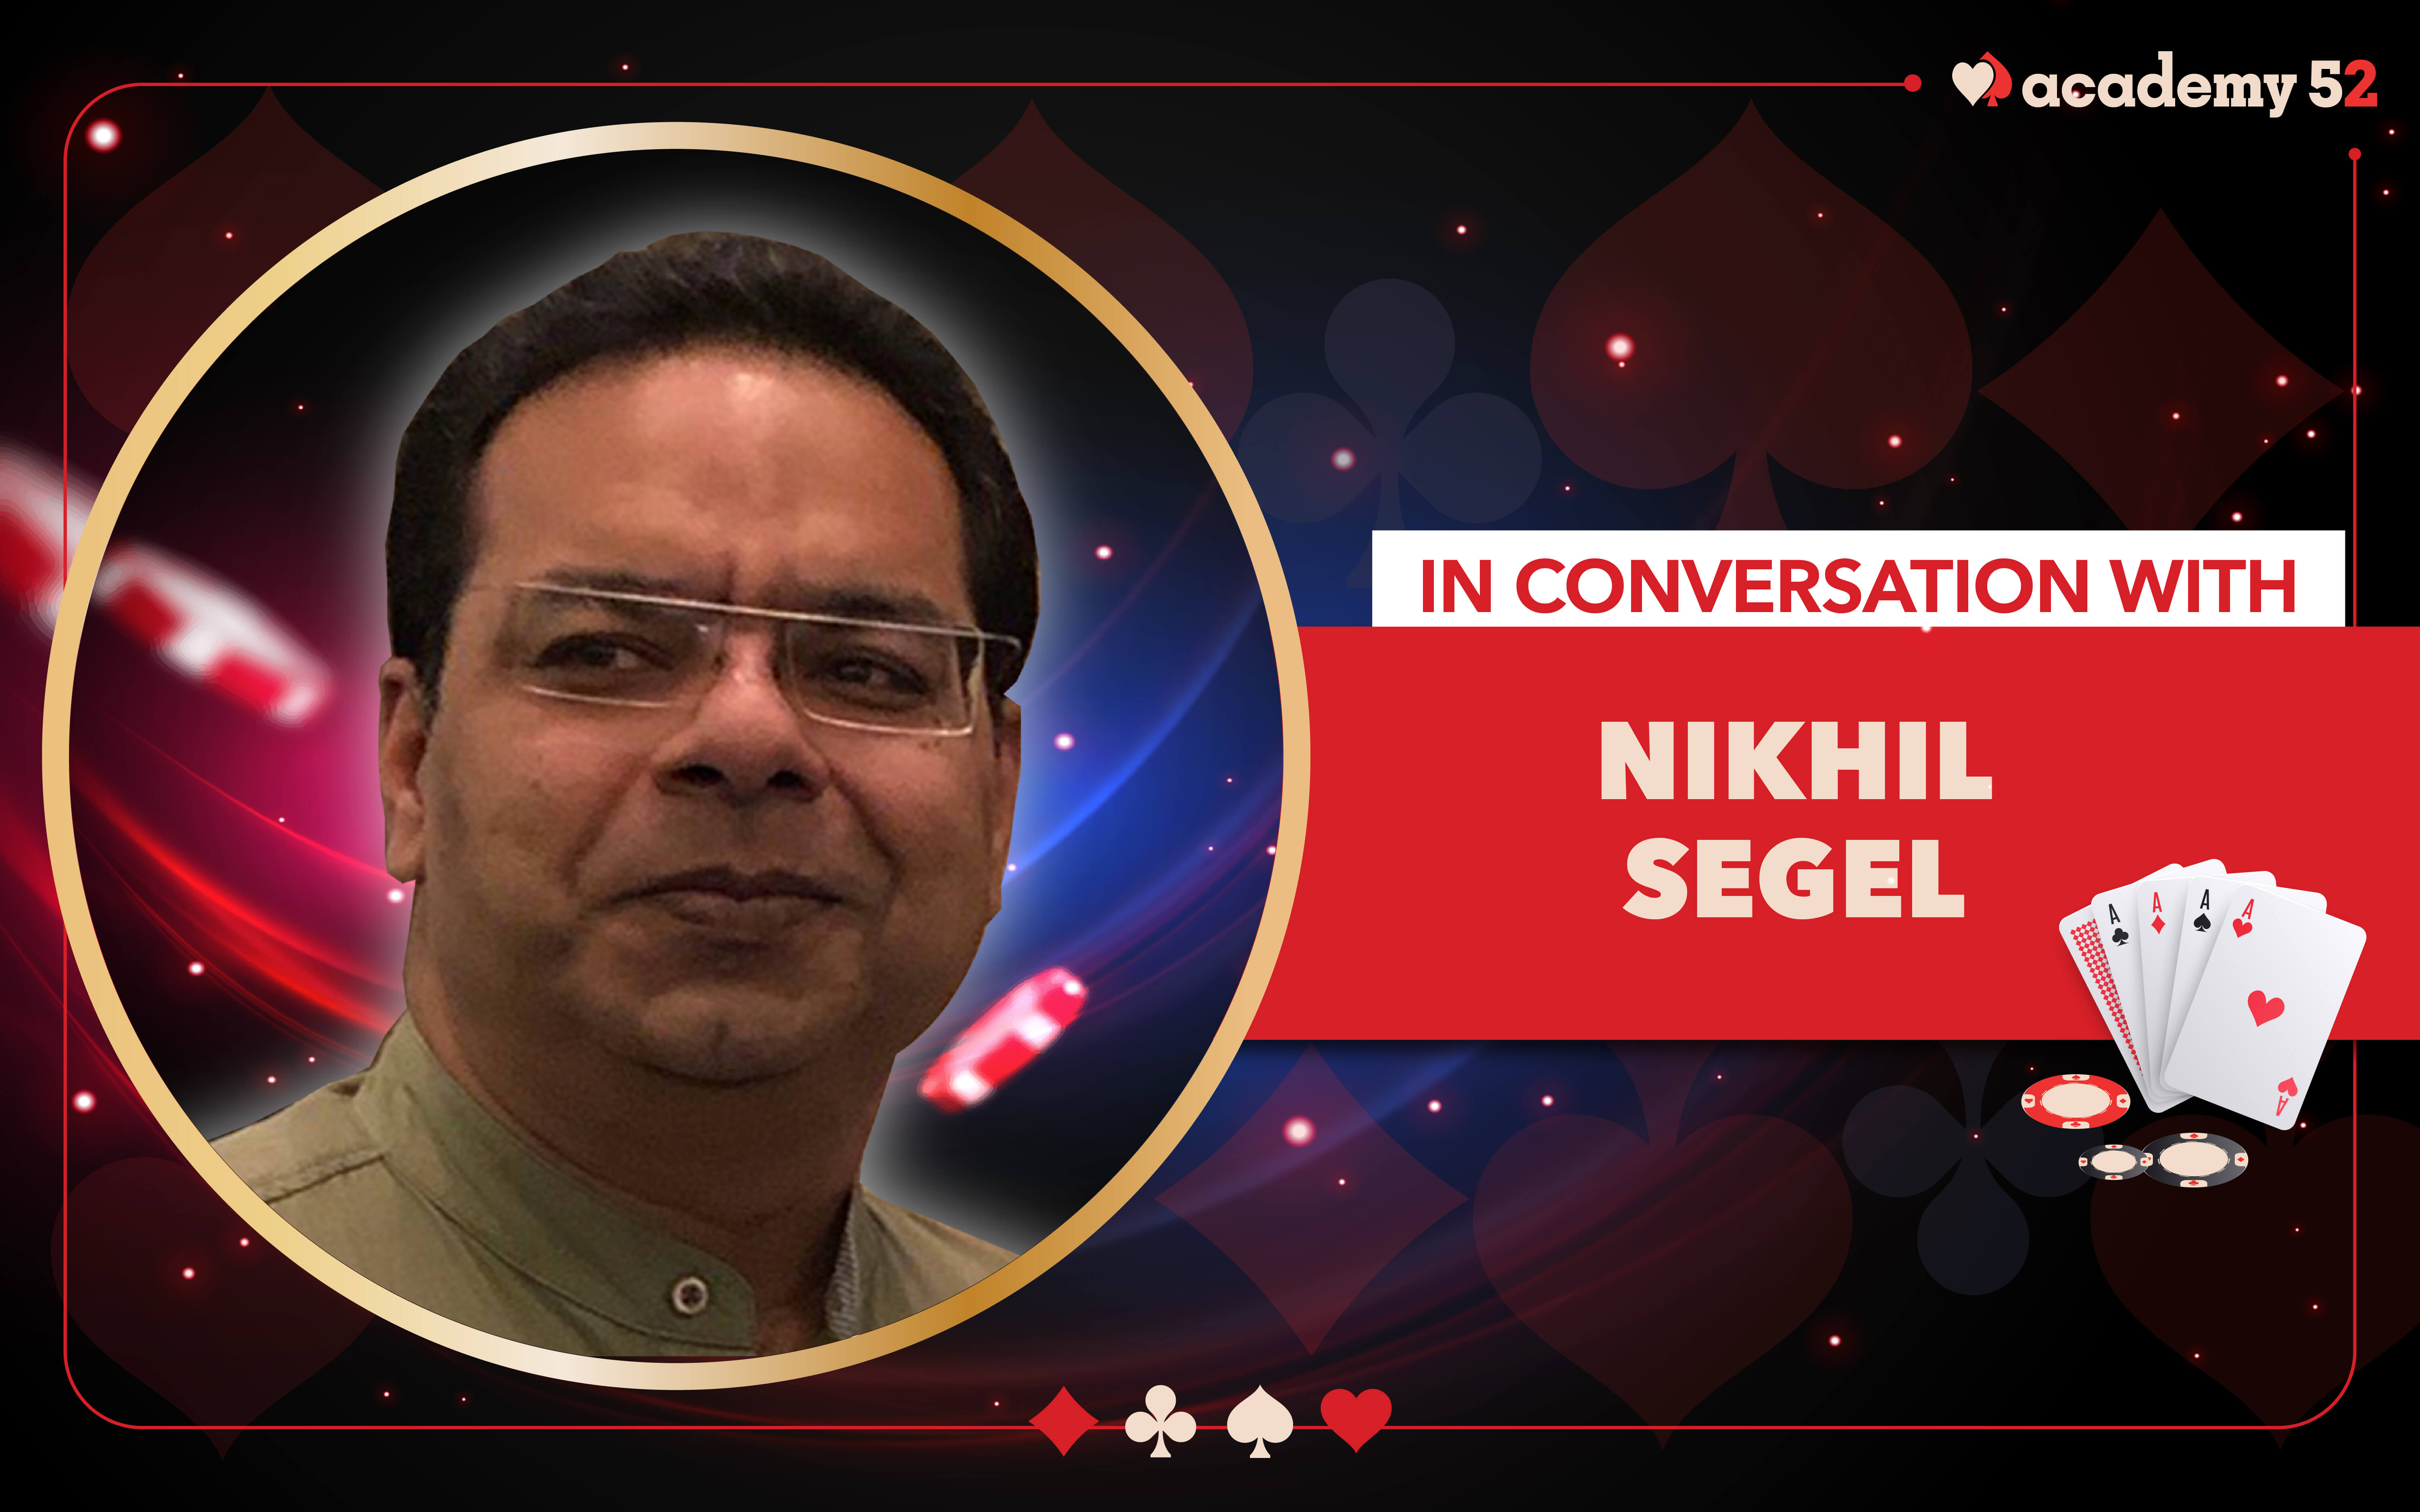 In Conversation with: Nikhil Segel